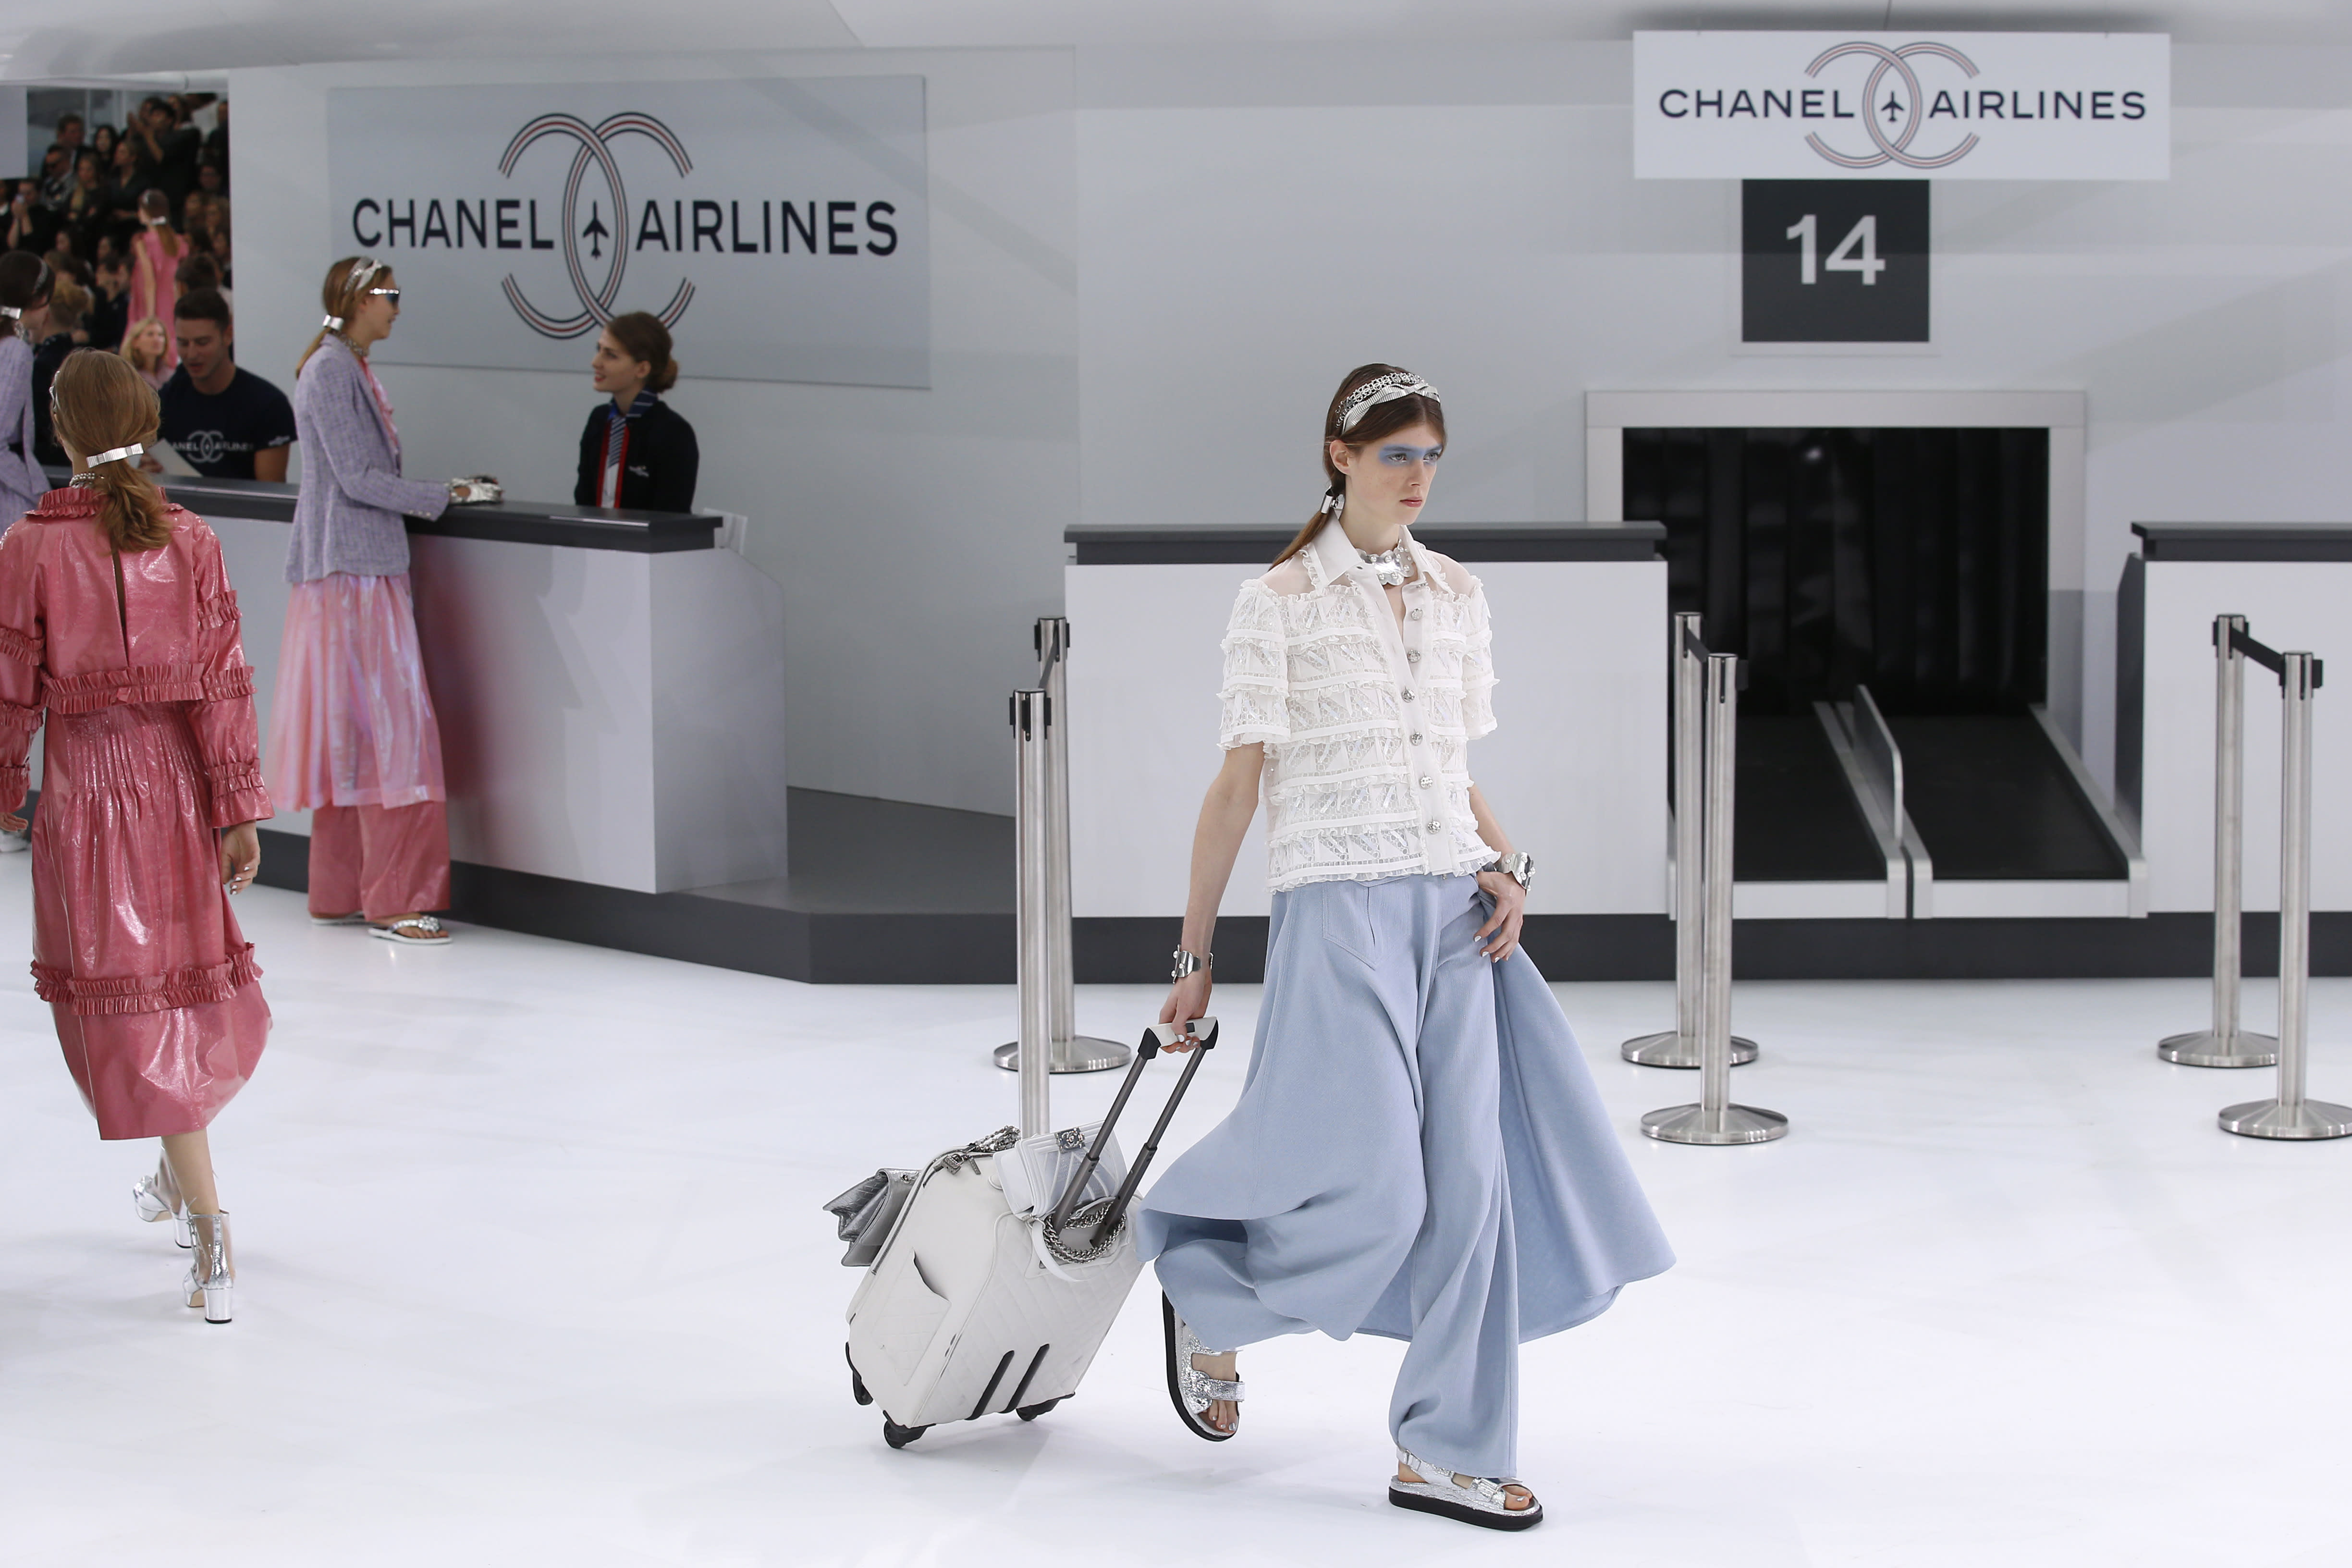 Chanel hosts airport show amid Paris aviation protest